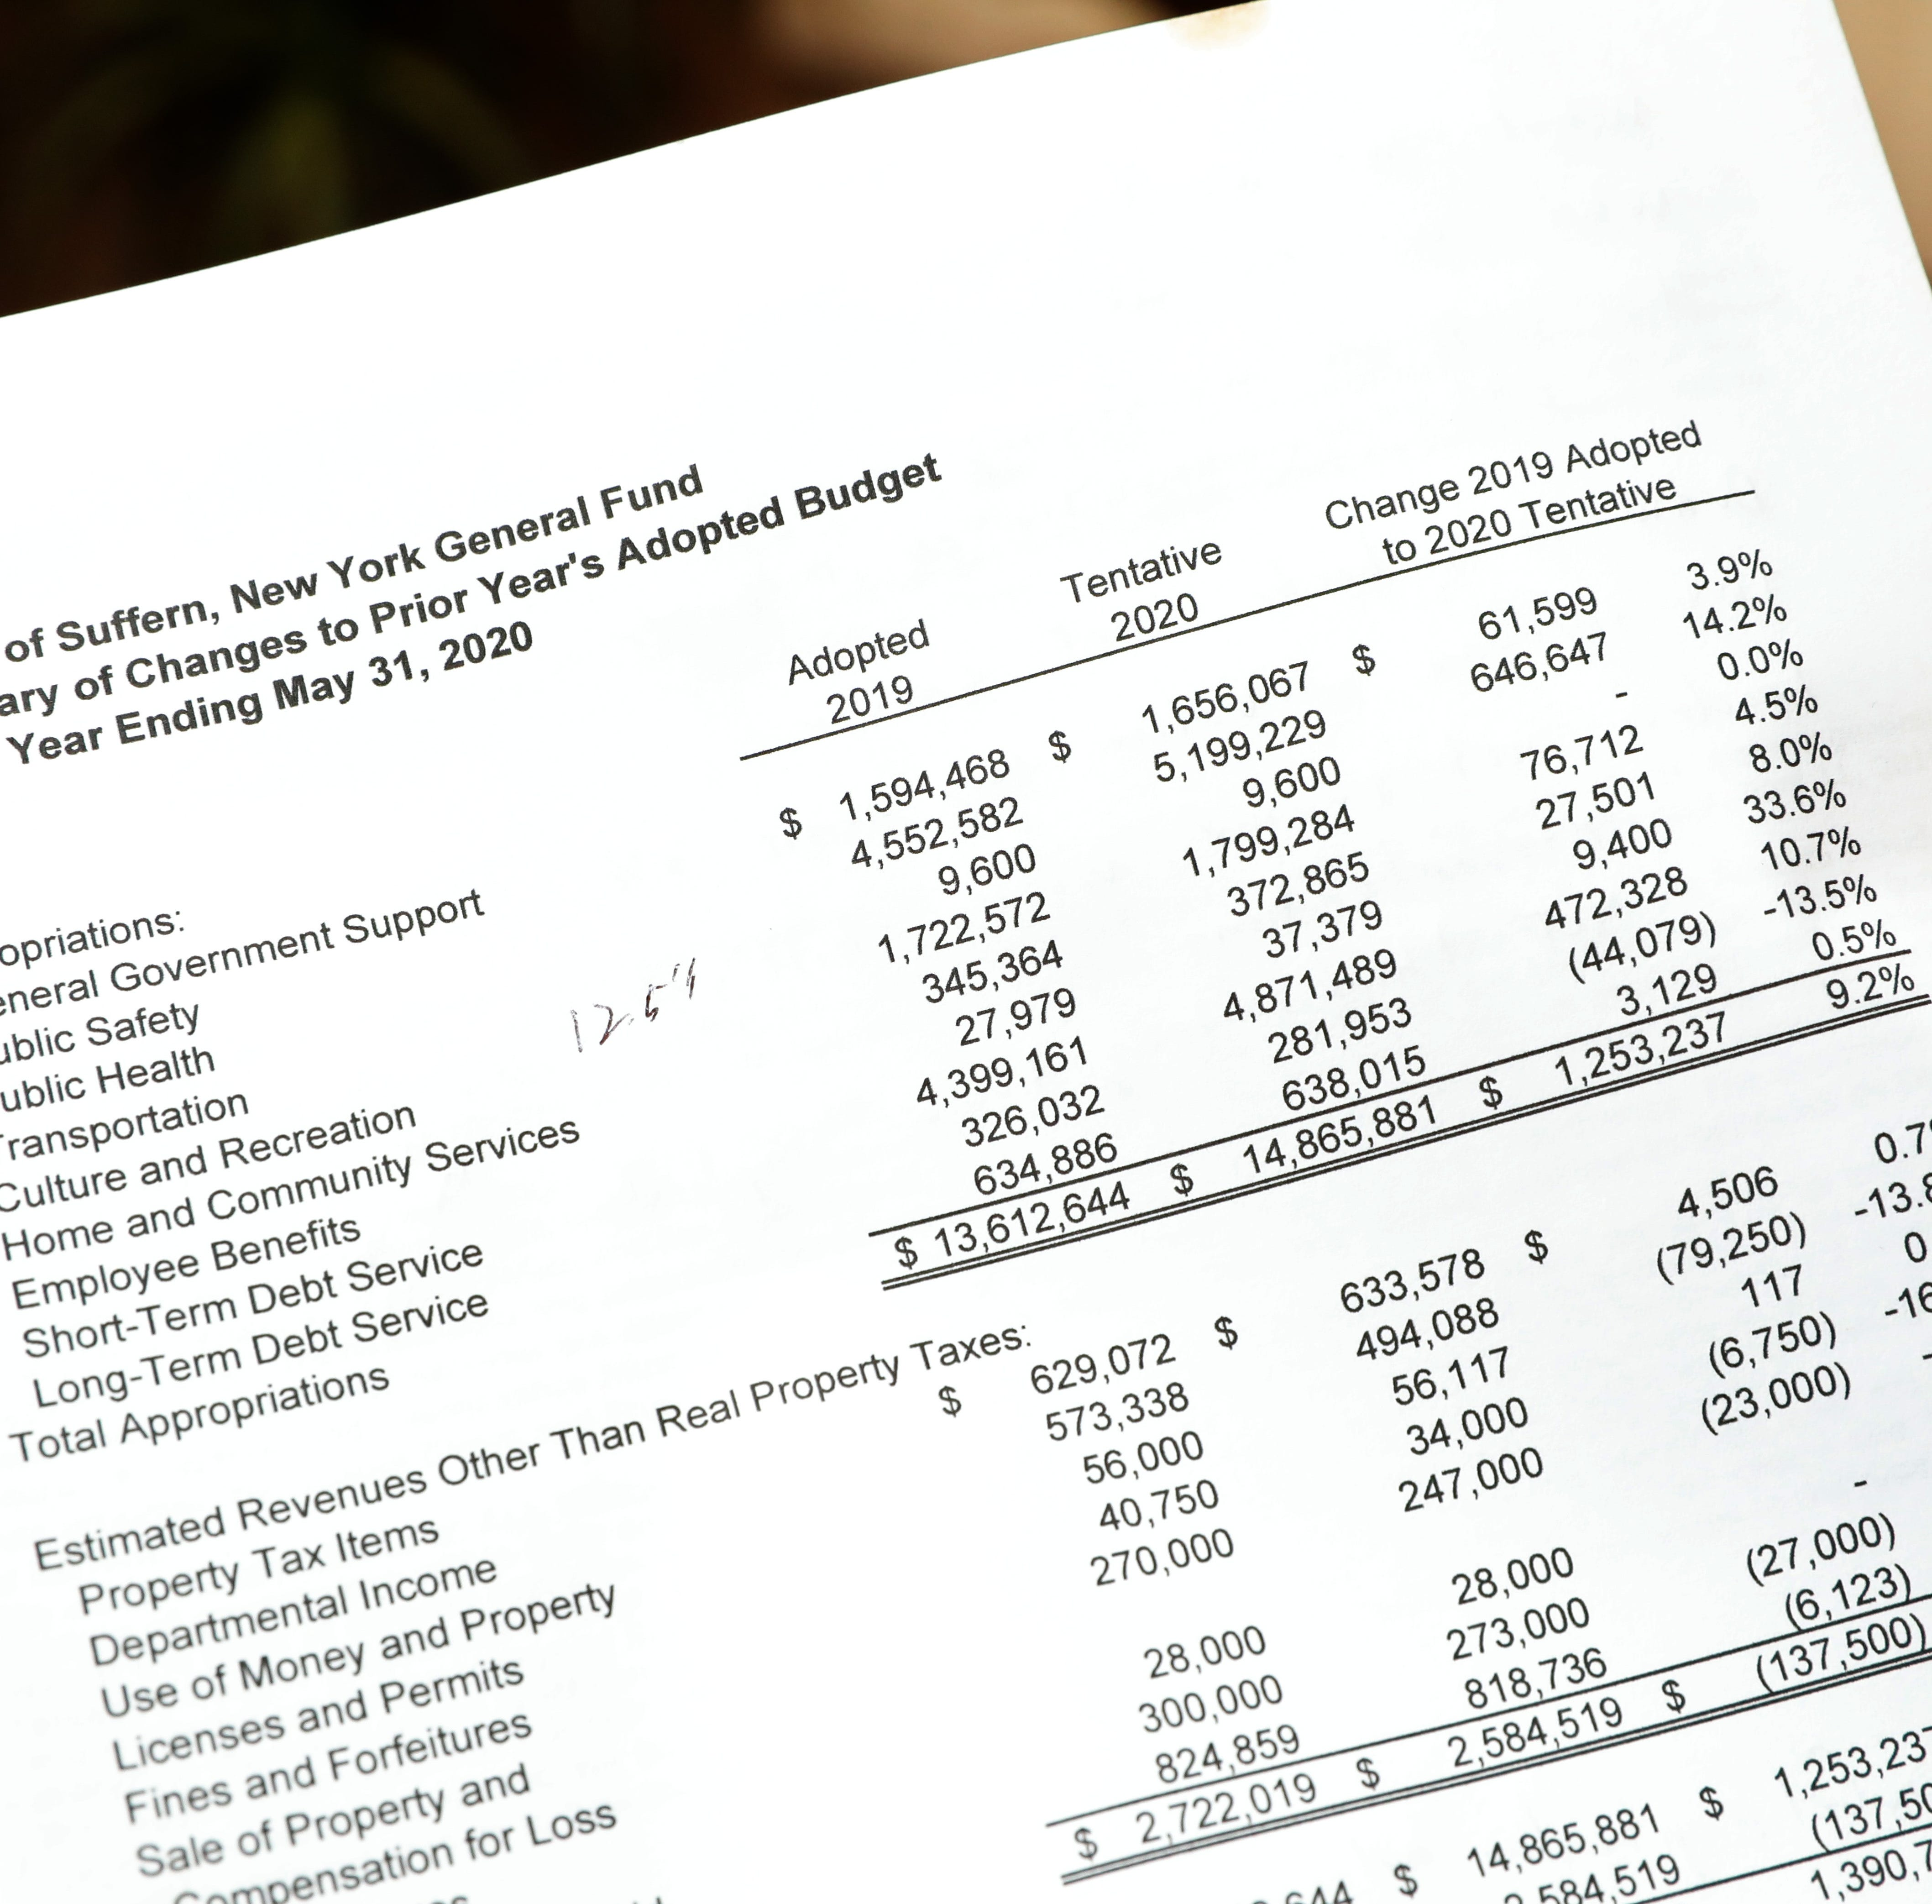 Suffern budget proposal includes 14 percent property tax hike as revenues drop with rising expenses